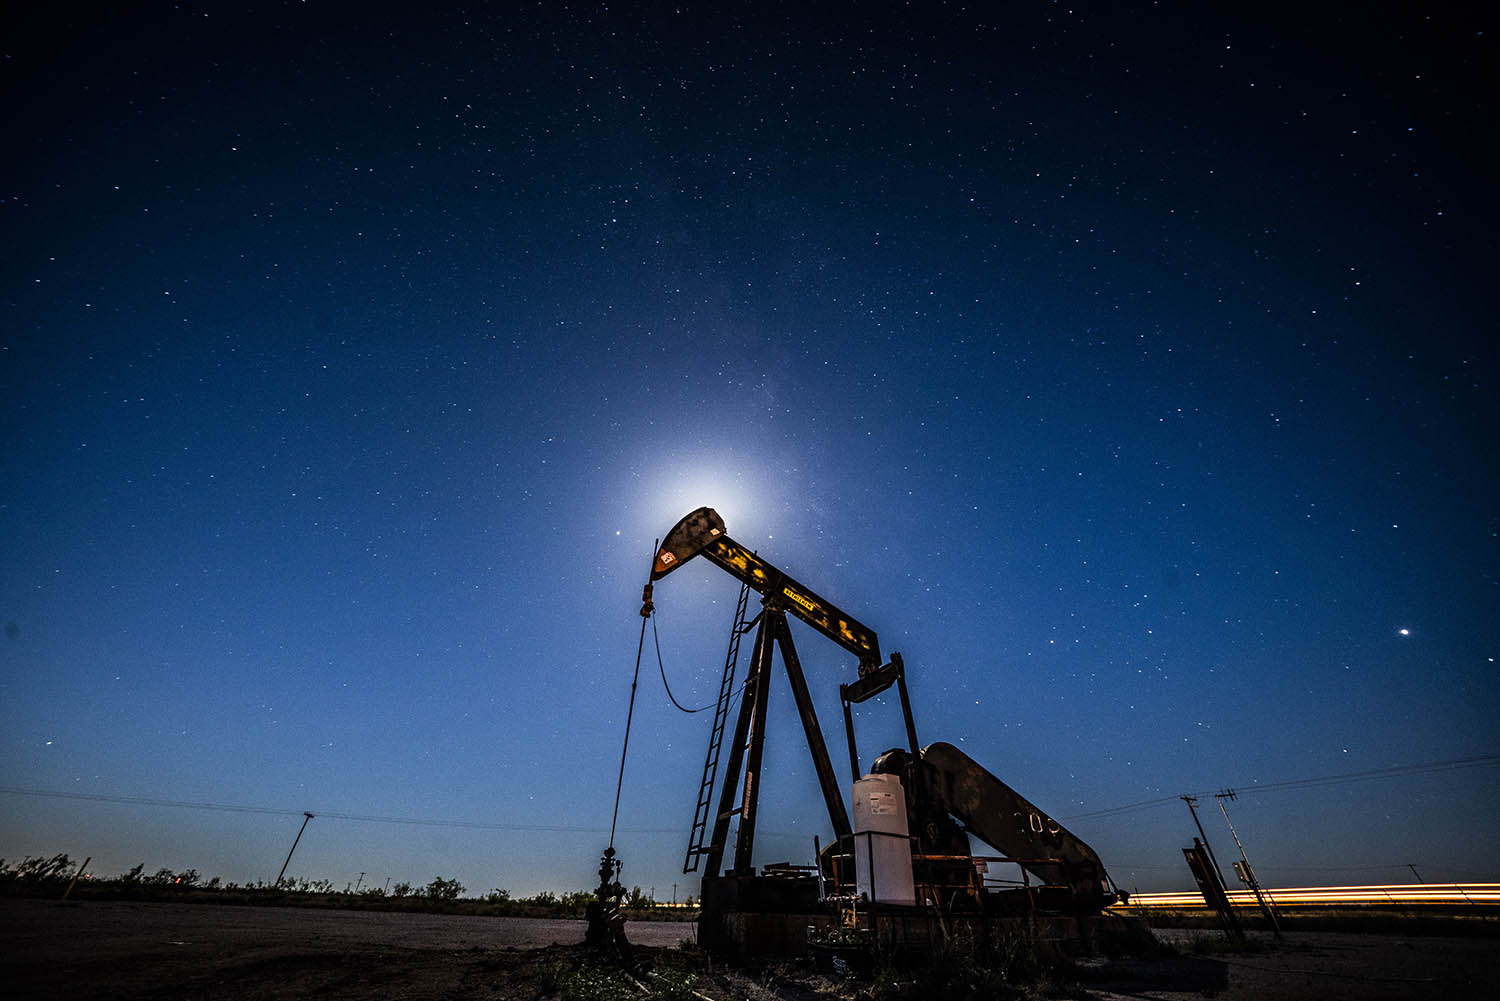 An oil pumpjack is silhouetted against the night sky in Midland, Texas, on May 5, 2018.